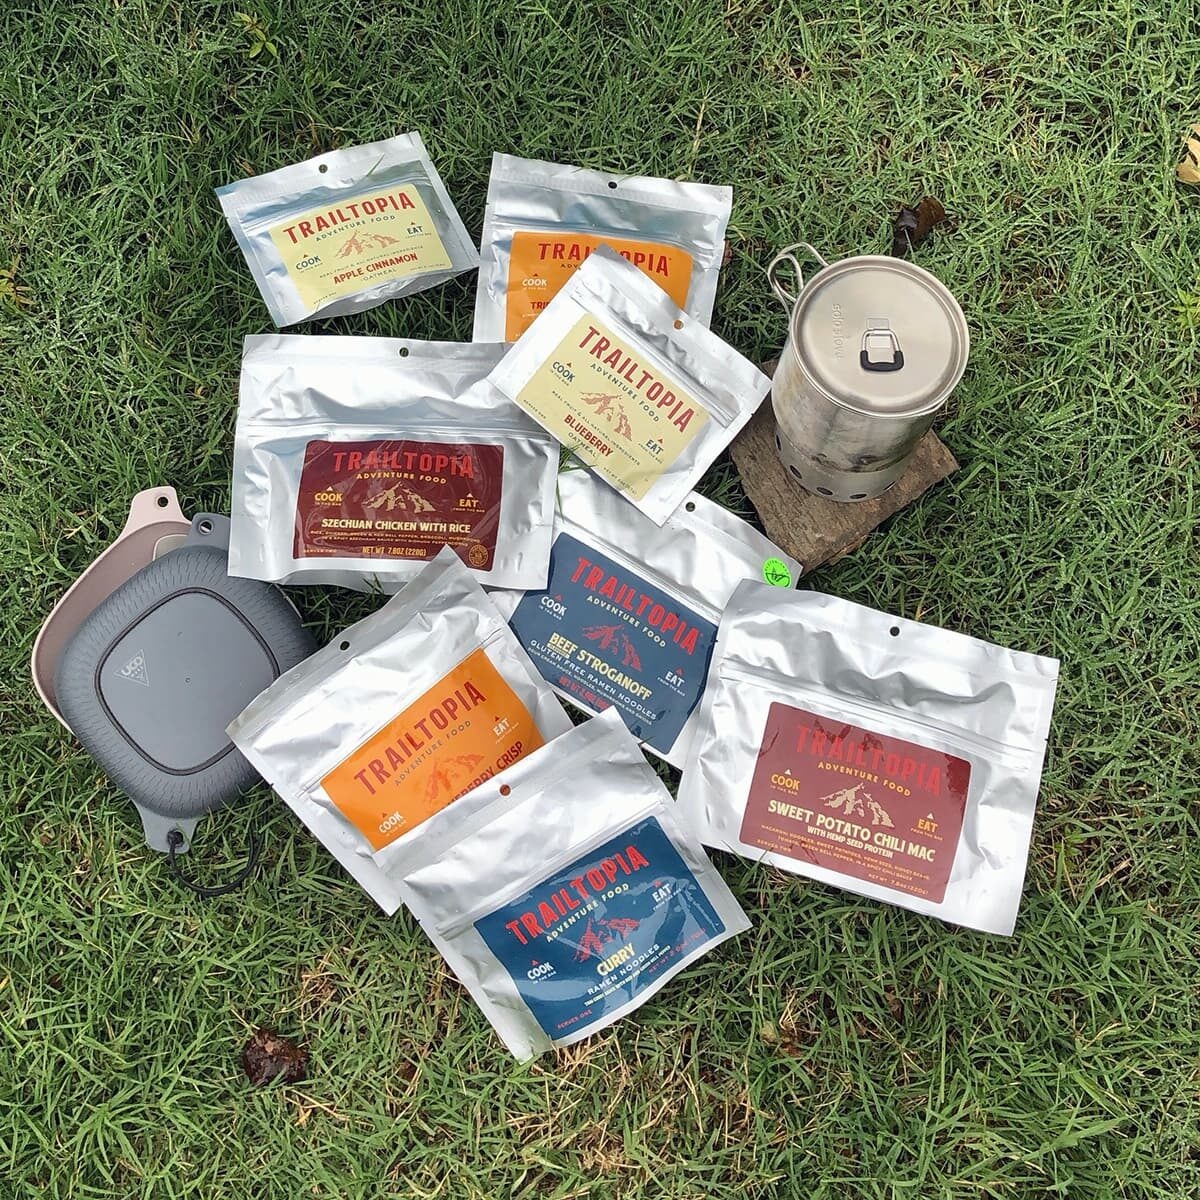 trailtopia freeze-dried camping food pouches on the grass, cooking pot and bowl